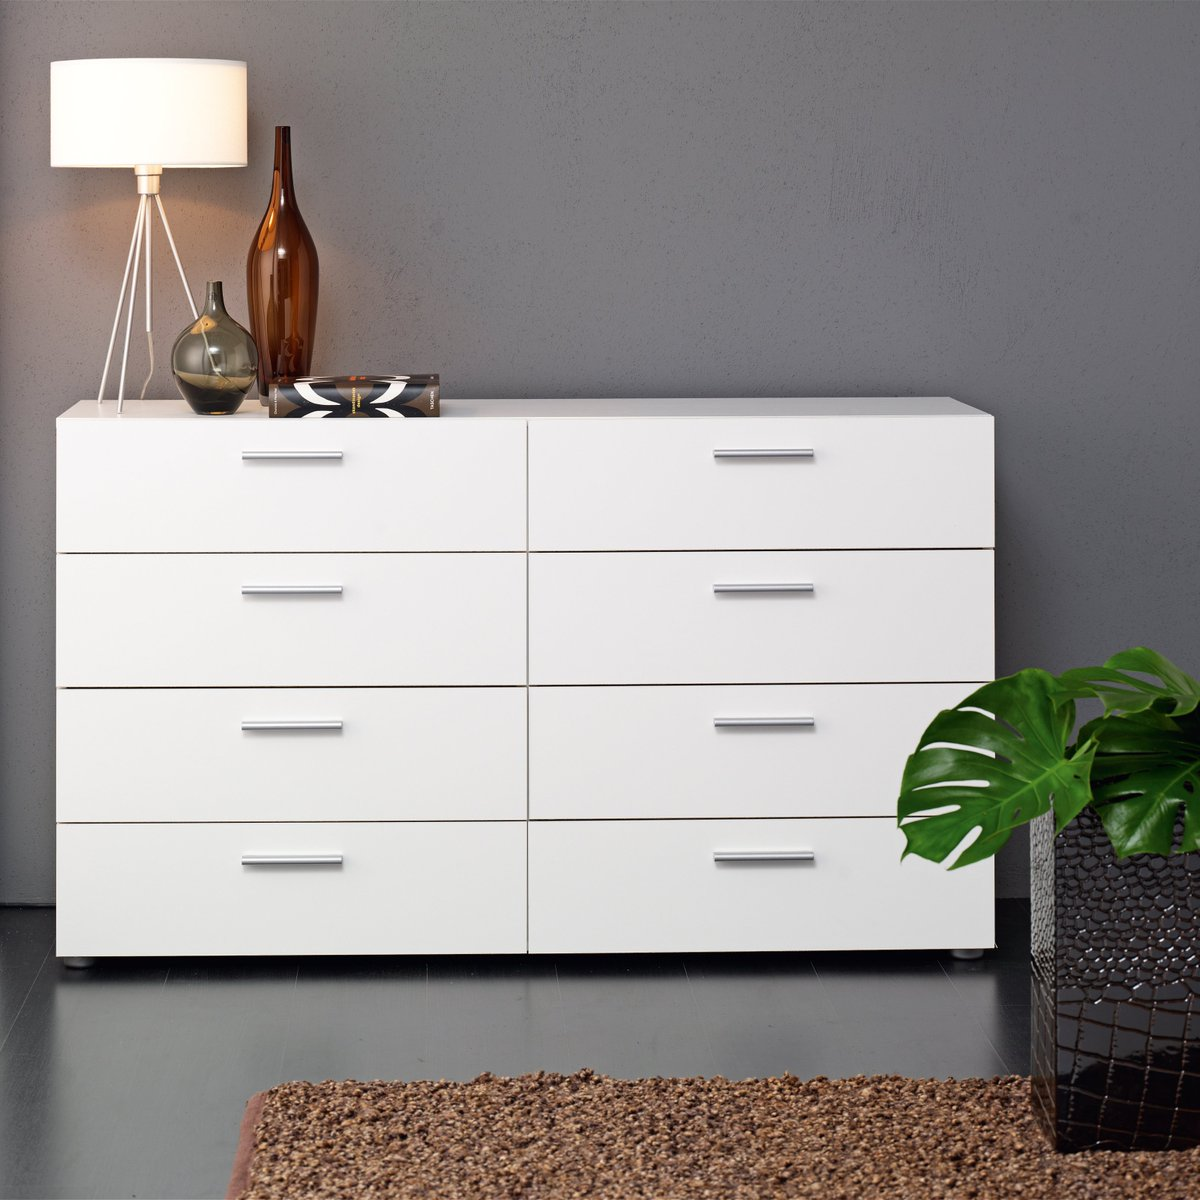 Curbed On Twitter 7 Fab Alternatives To Ikea S Recalled Malm Dressers Https T Co Qq7xewuqpb